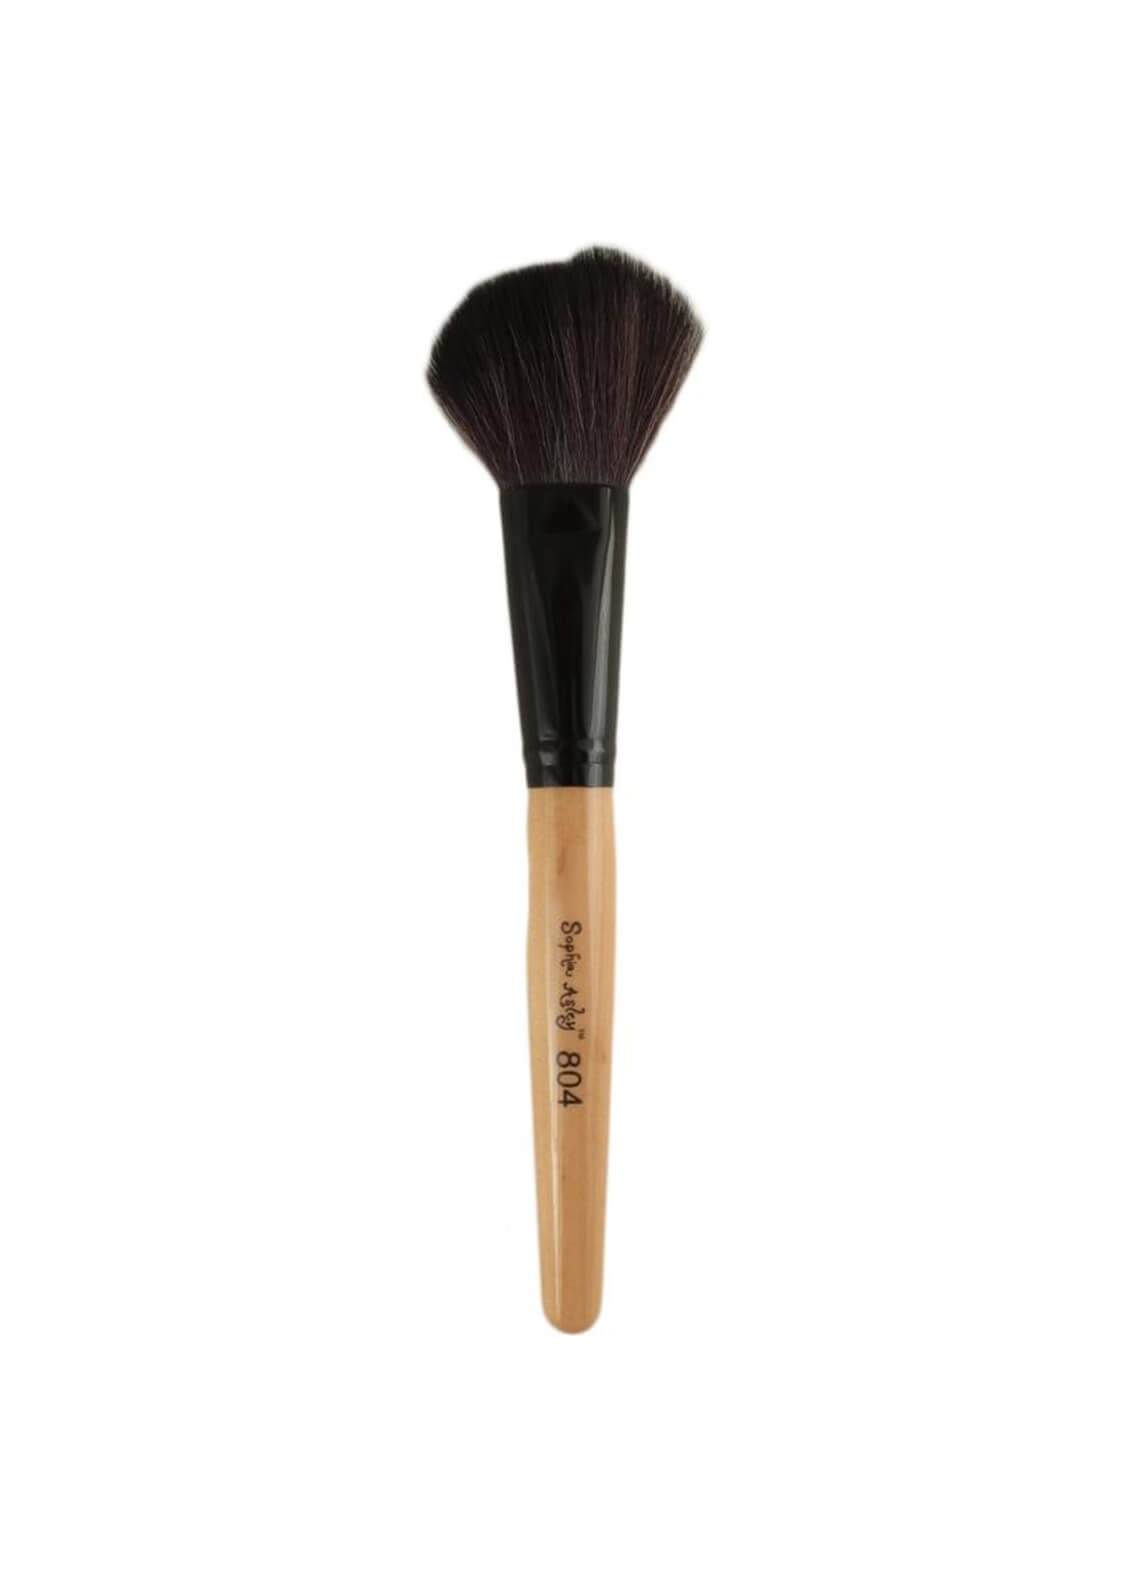 Sophia Asley Professional Wooden Controling Brush